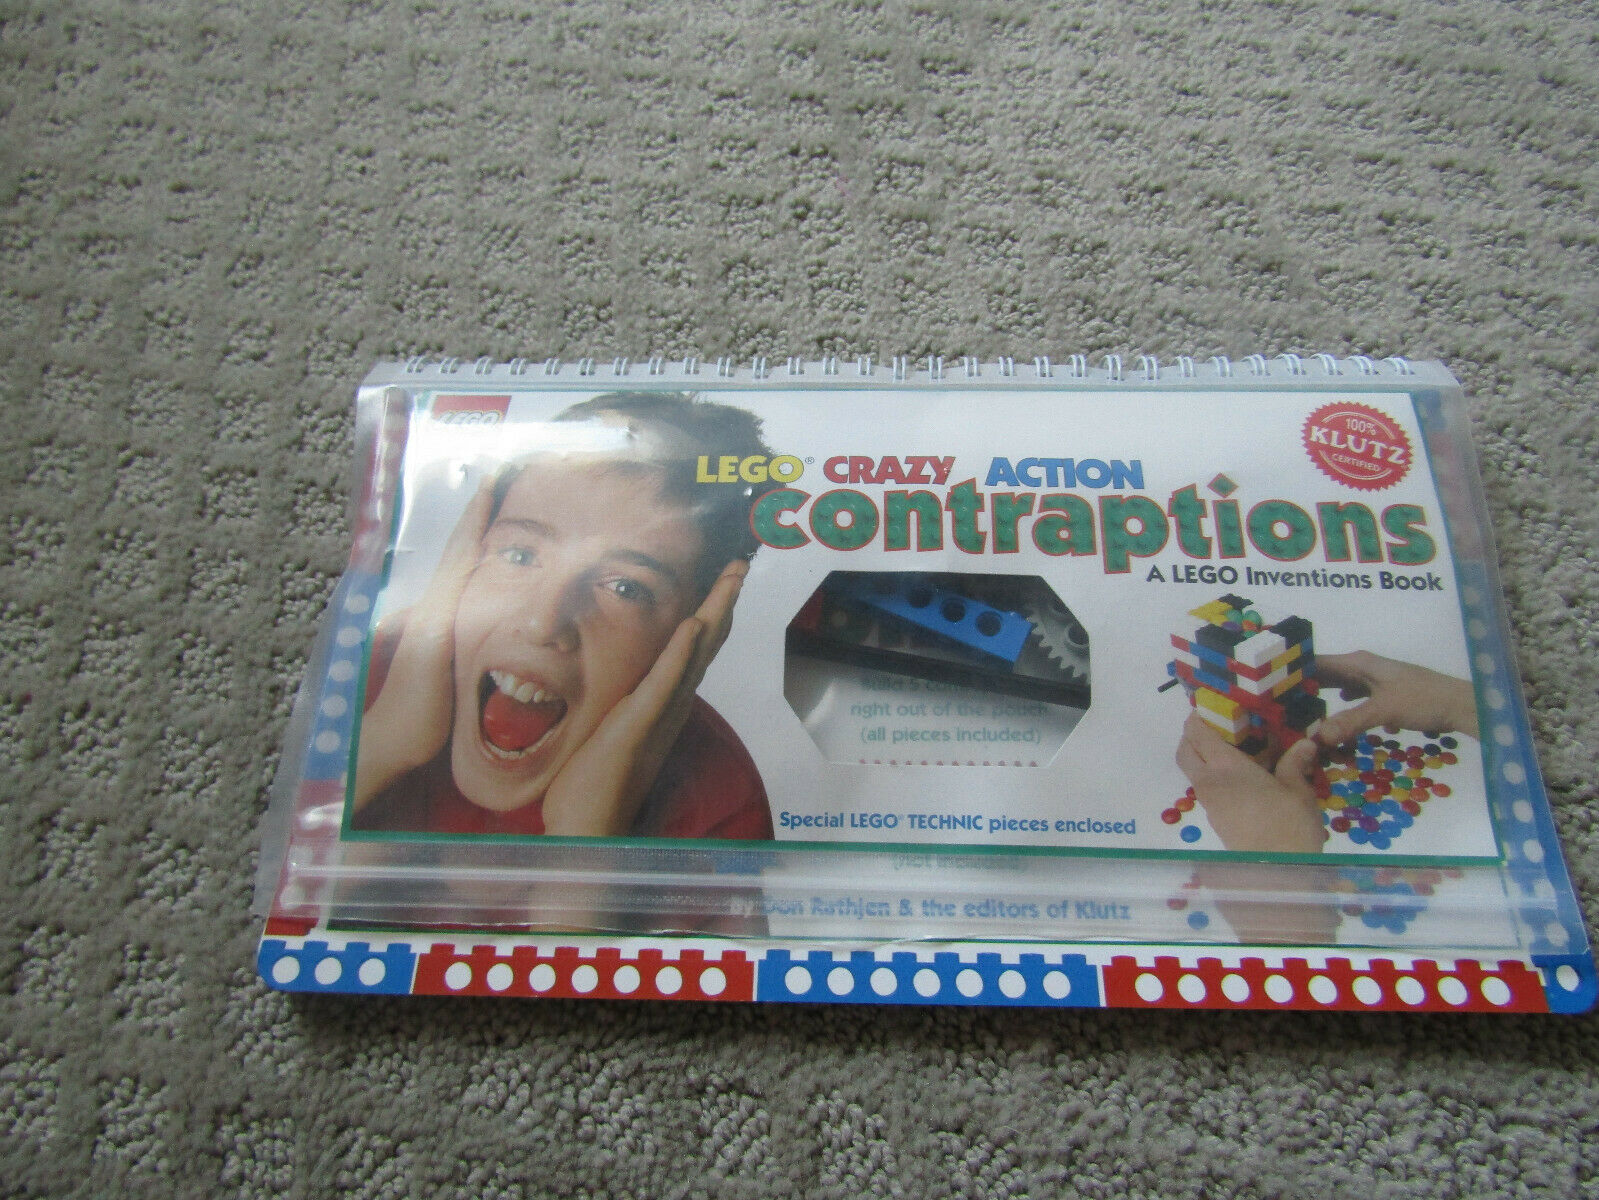 NEW 100/% Klutz Certified LEGO Crazy Action Contraptions Craft Kit 16 Projects